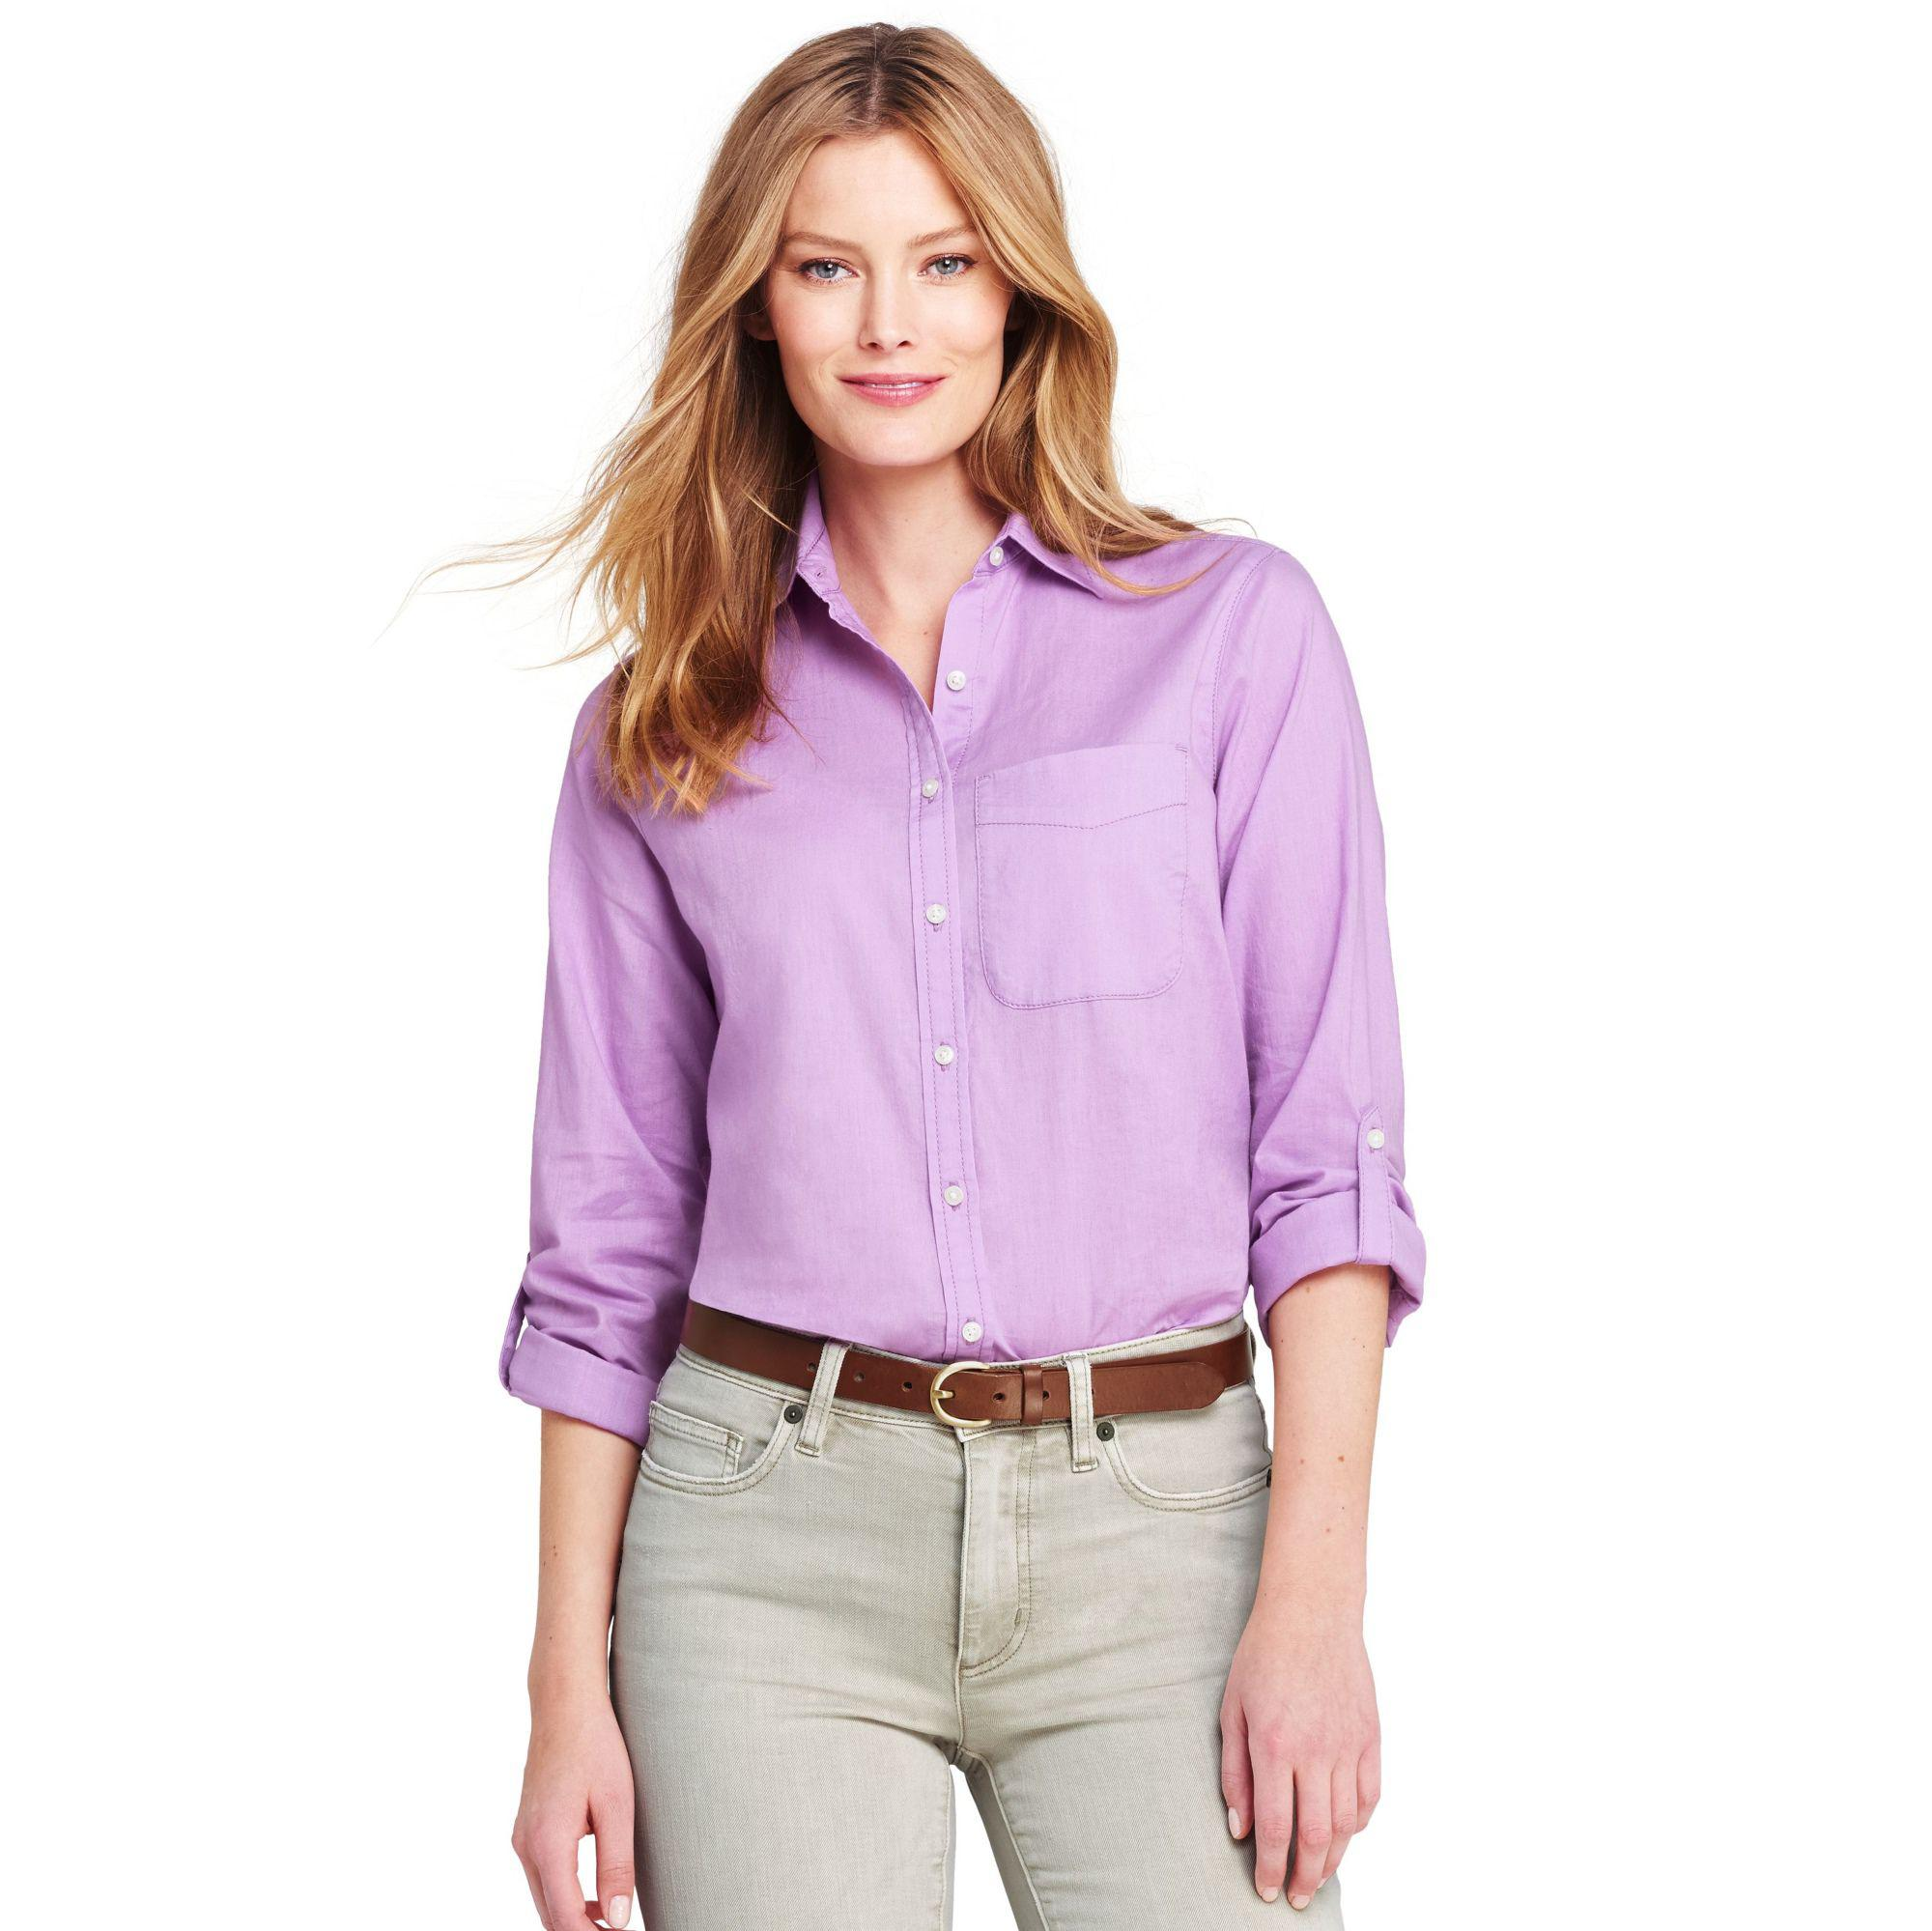 Cheap Sale Release Dates Discount Outlet Locations Womens Regular Cotton/Modal Sleep Tee - 10 -12 - PURPLE Lands End Up To Date Manchester Great Sale For Sale Discount Cheap 7gtdqDJ